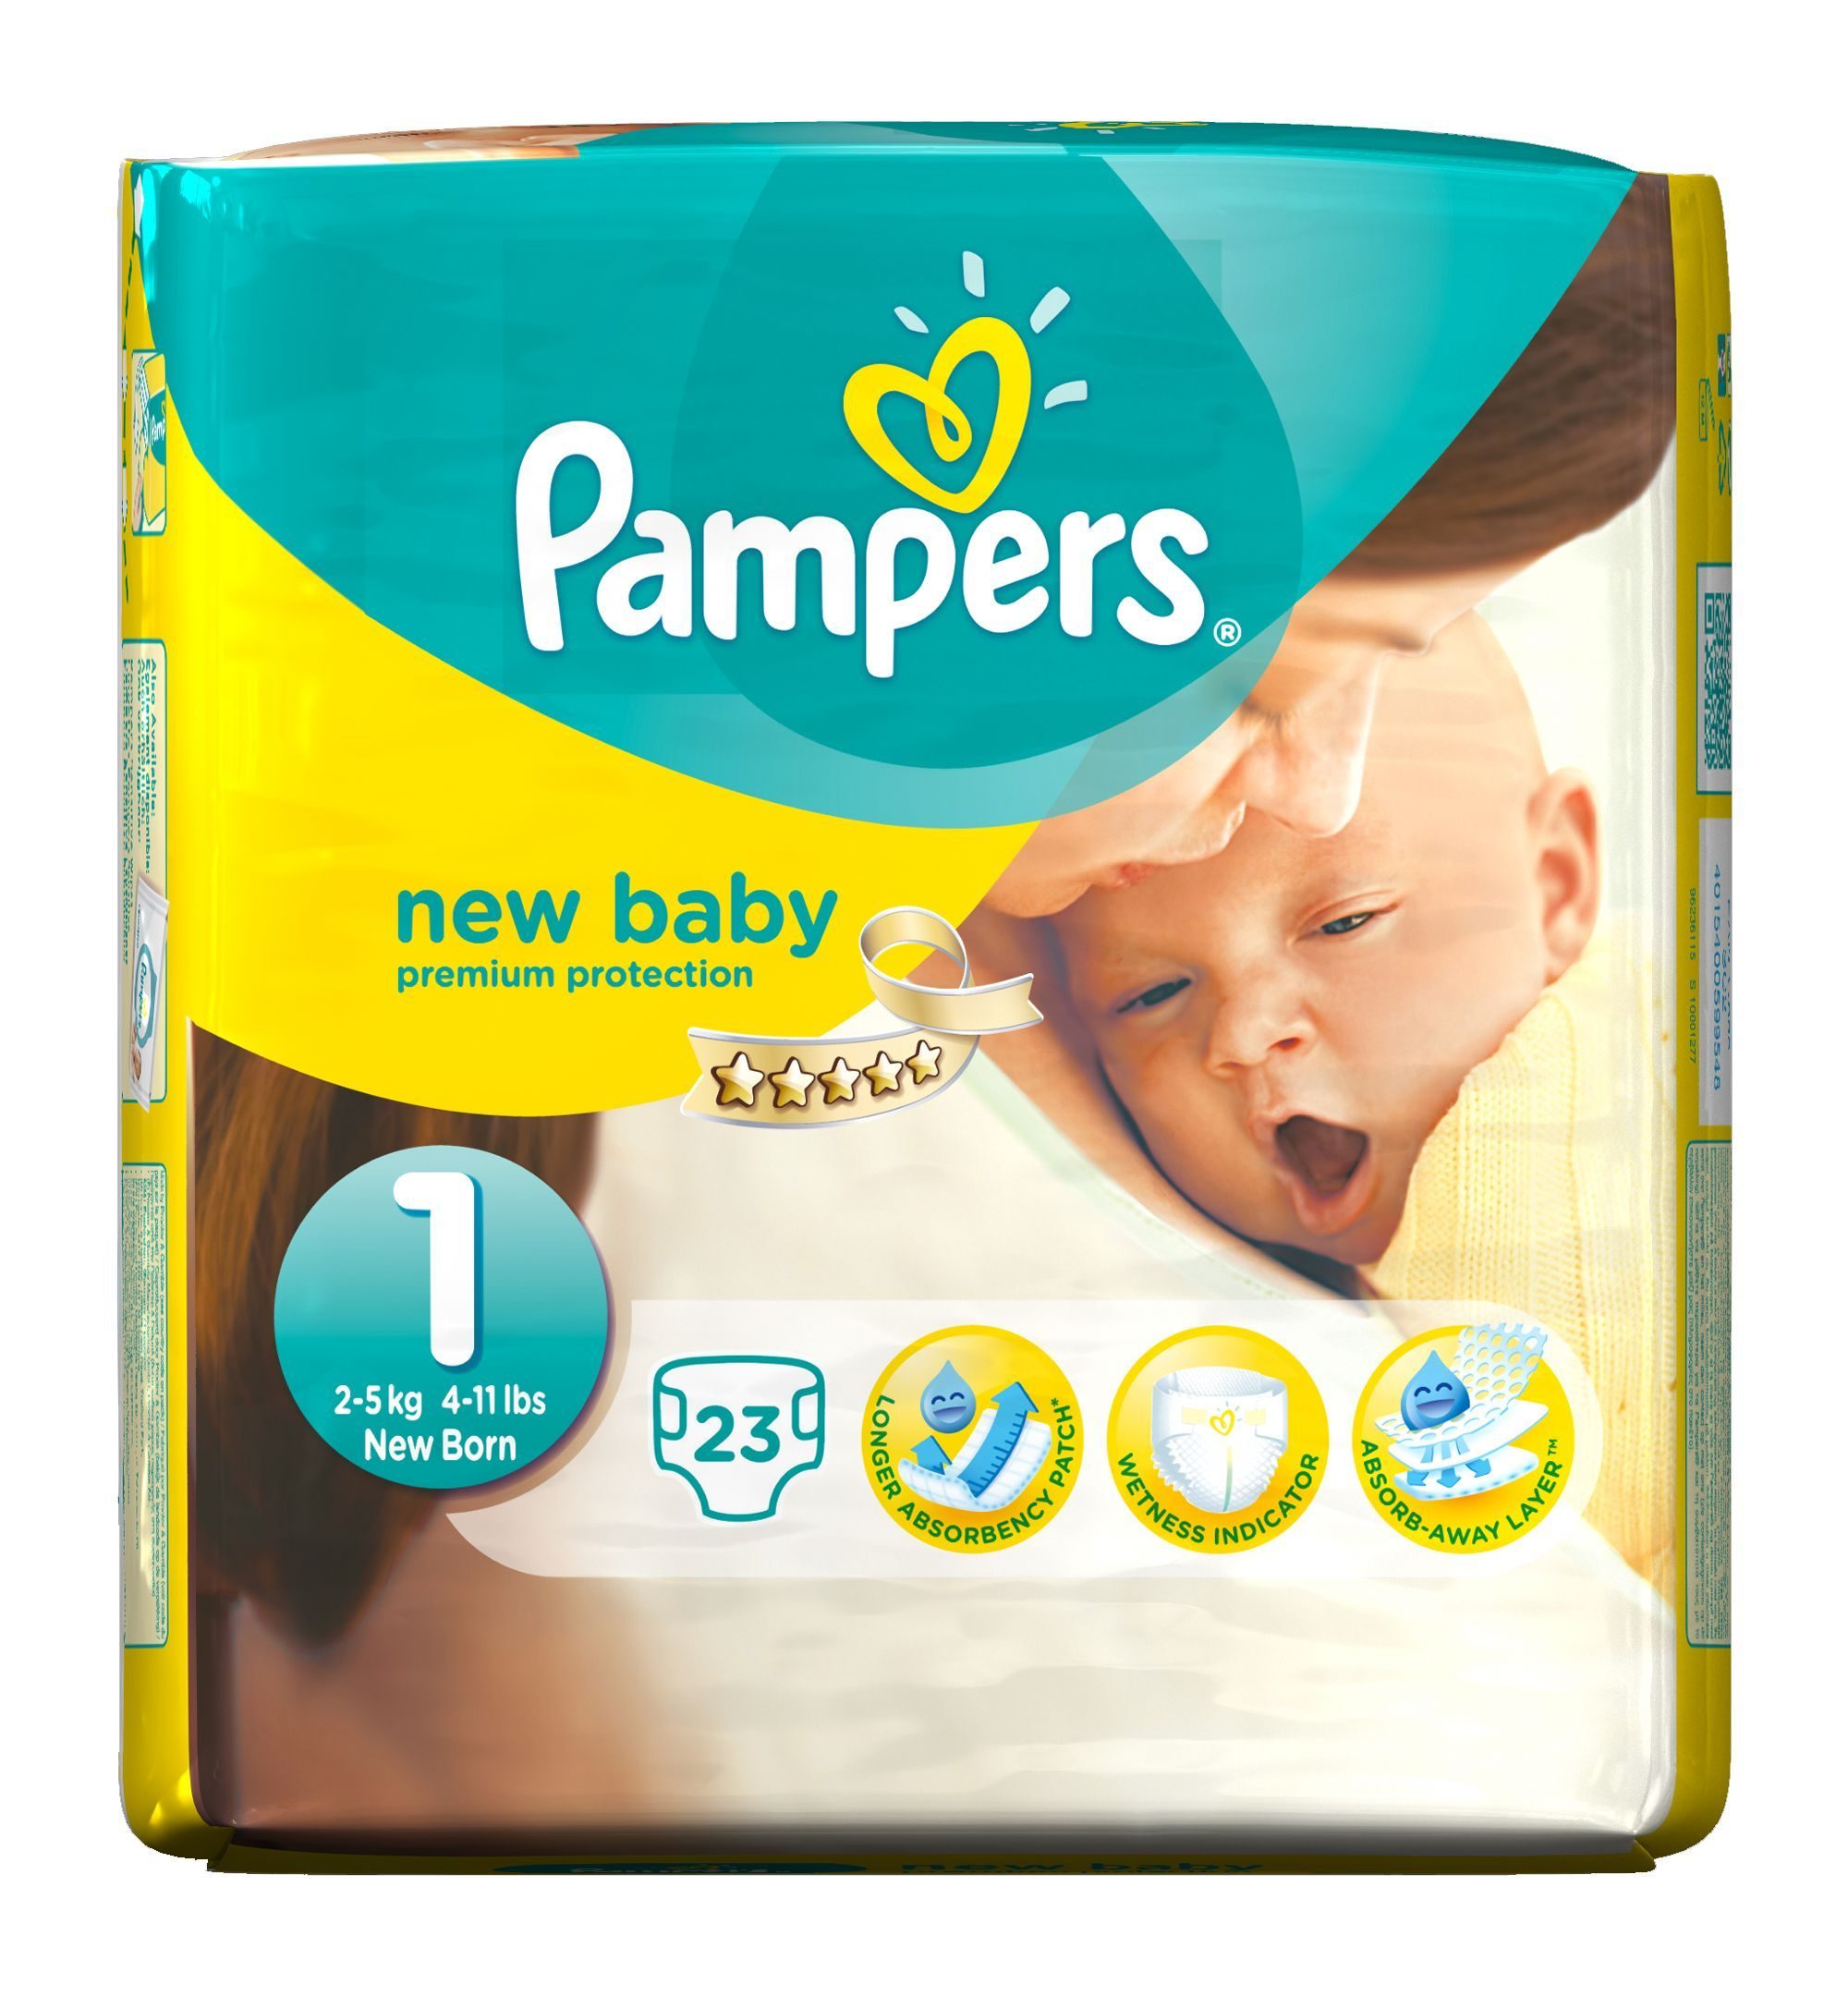 pampers new baby size 1 newborn nappies 2 5kg 4 11lbs